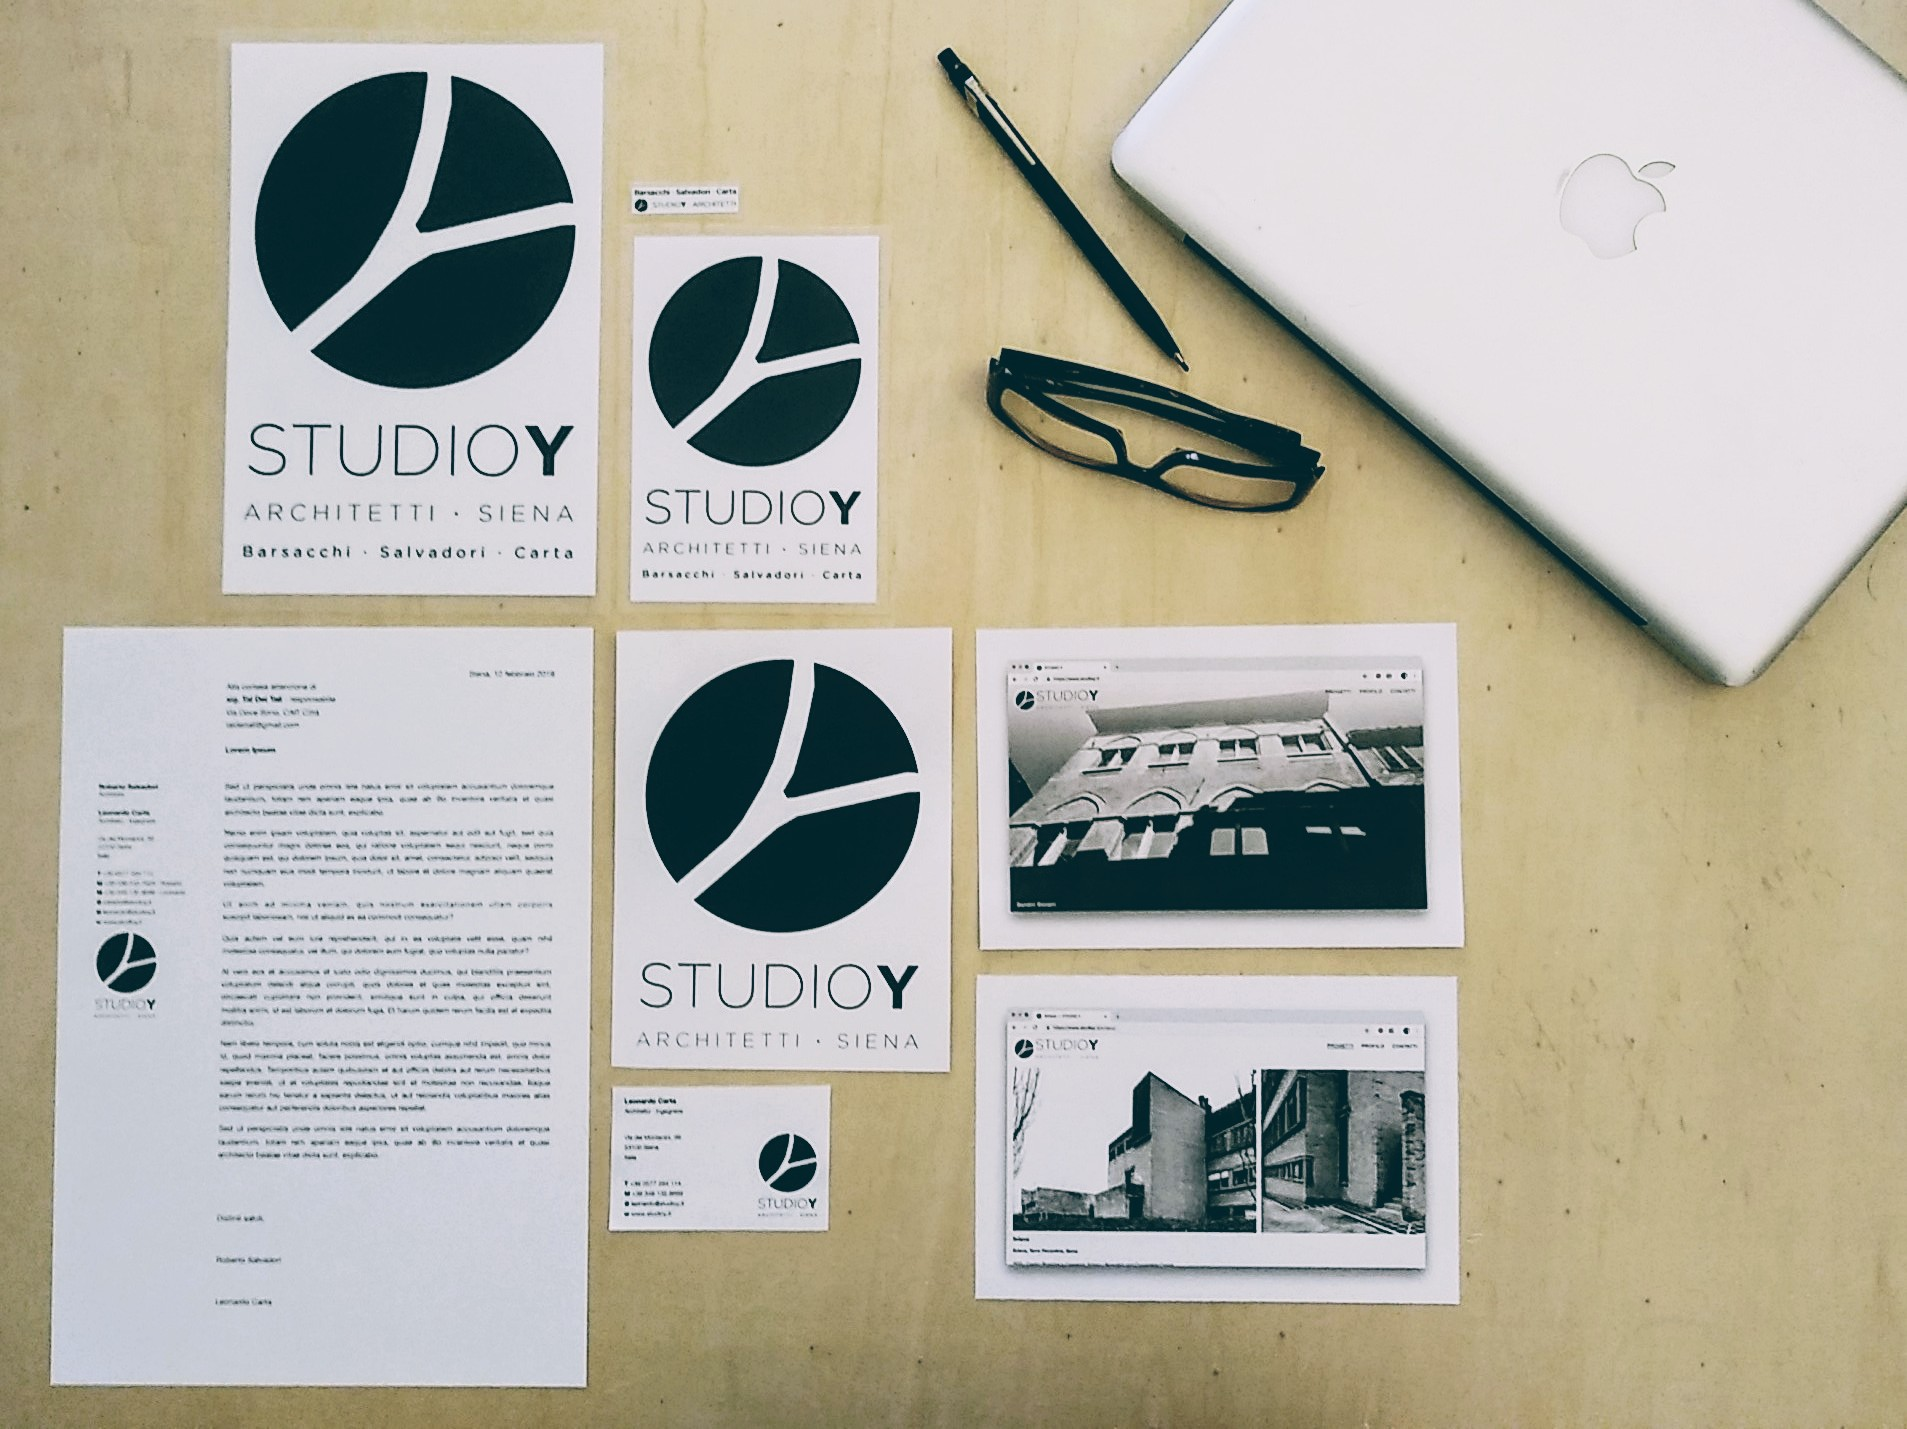 Brand identity, logo design, graphic design, website design realizzato da /  created by  STUDIO Y